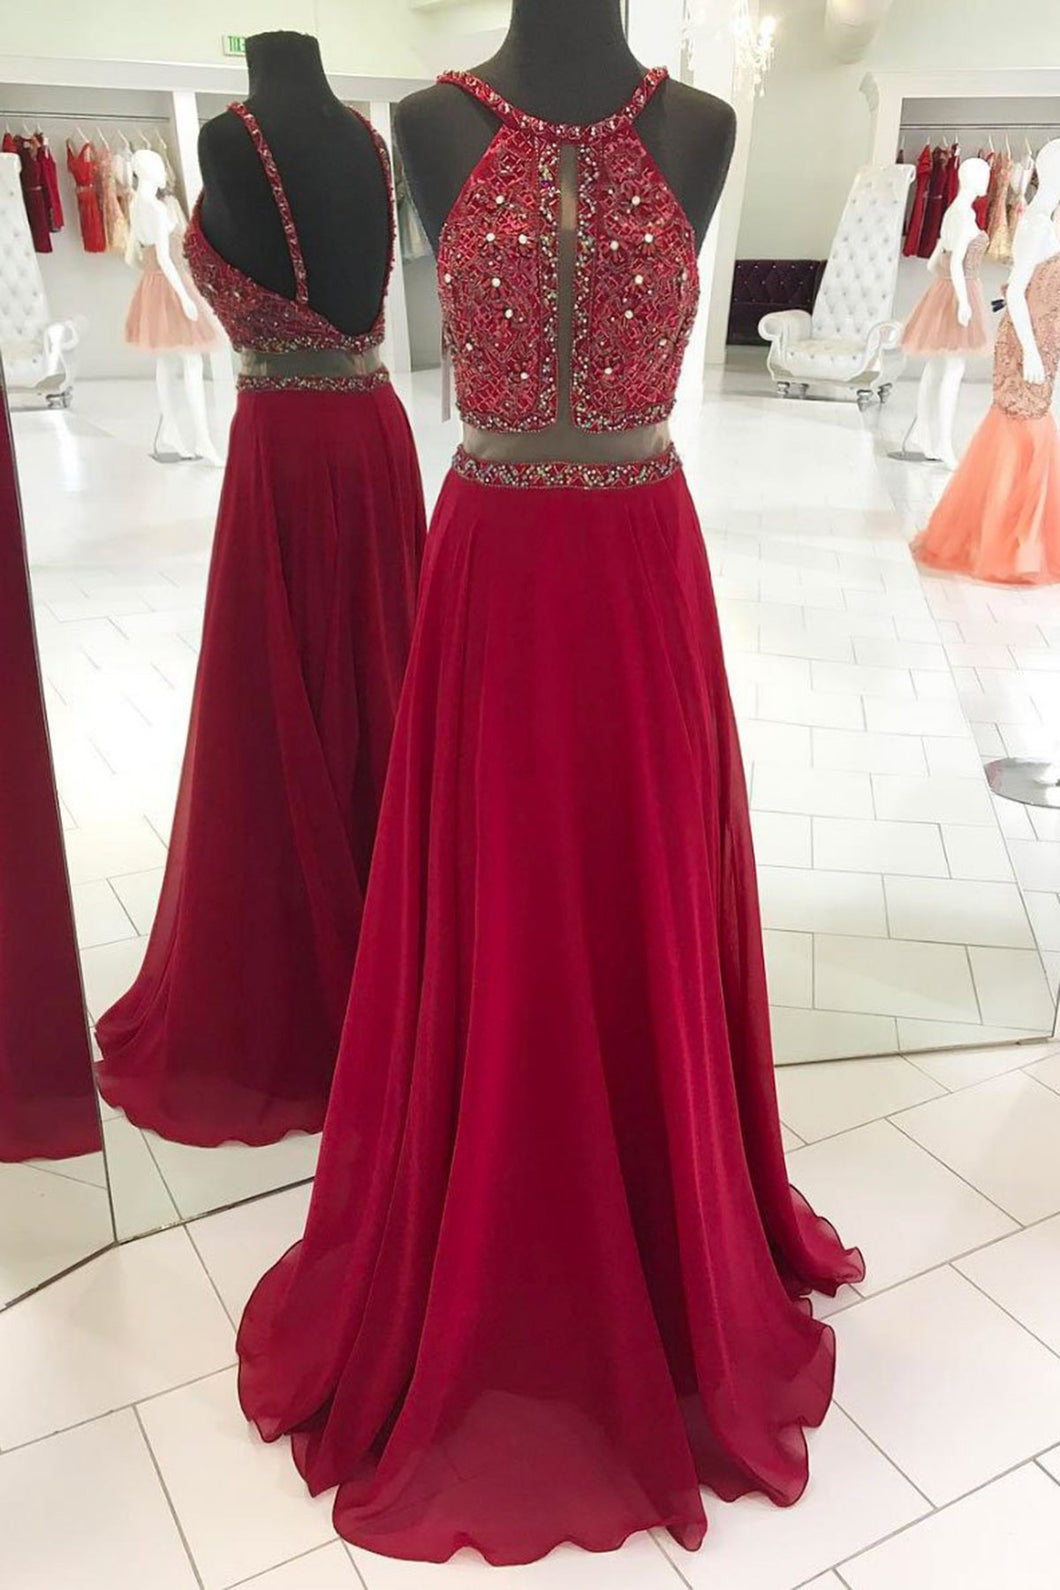 2019 Prom Dresses | Burgundy chiffon open back long see through long evening dress, strapless long prom dress